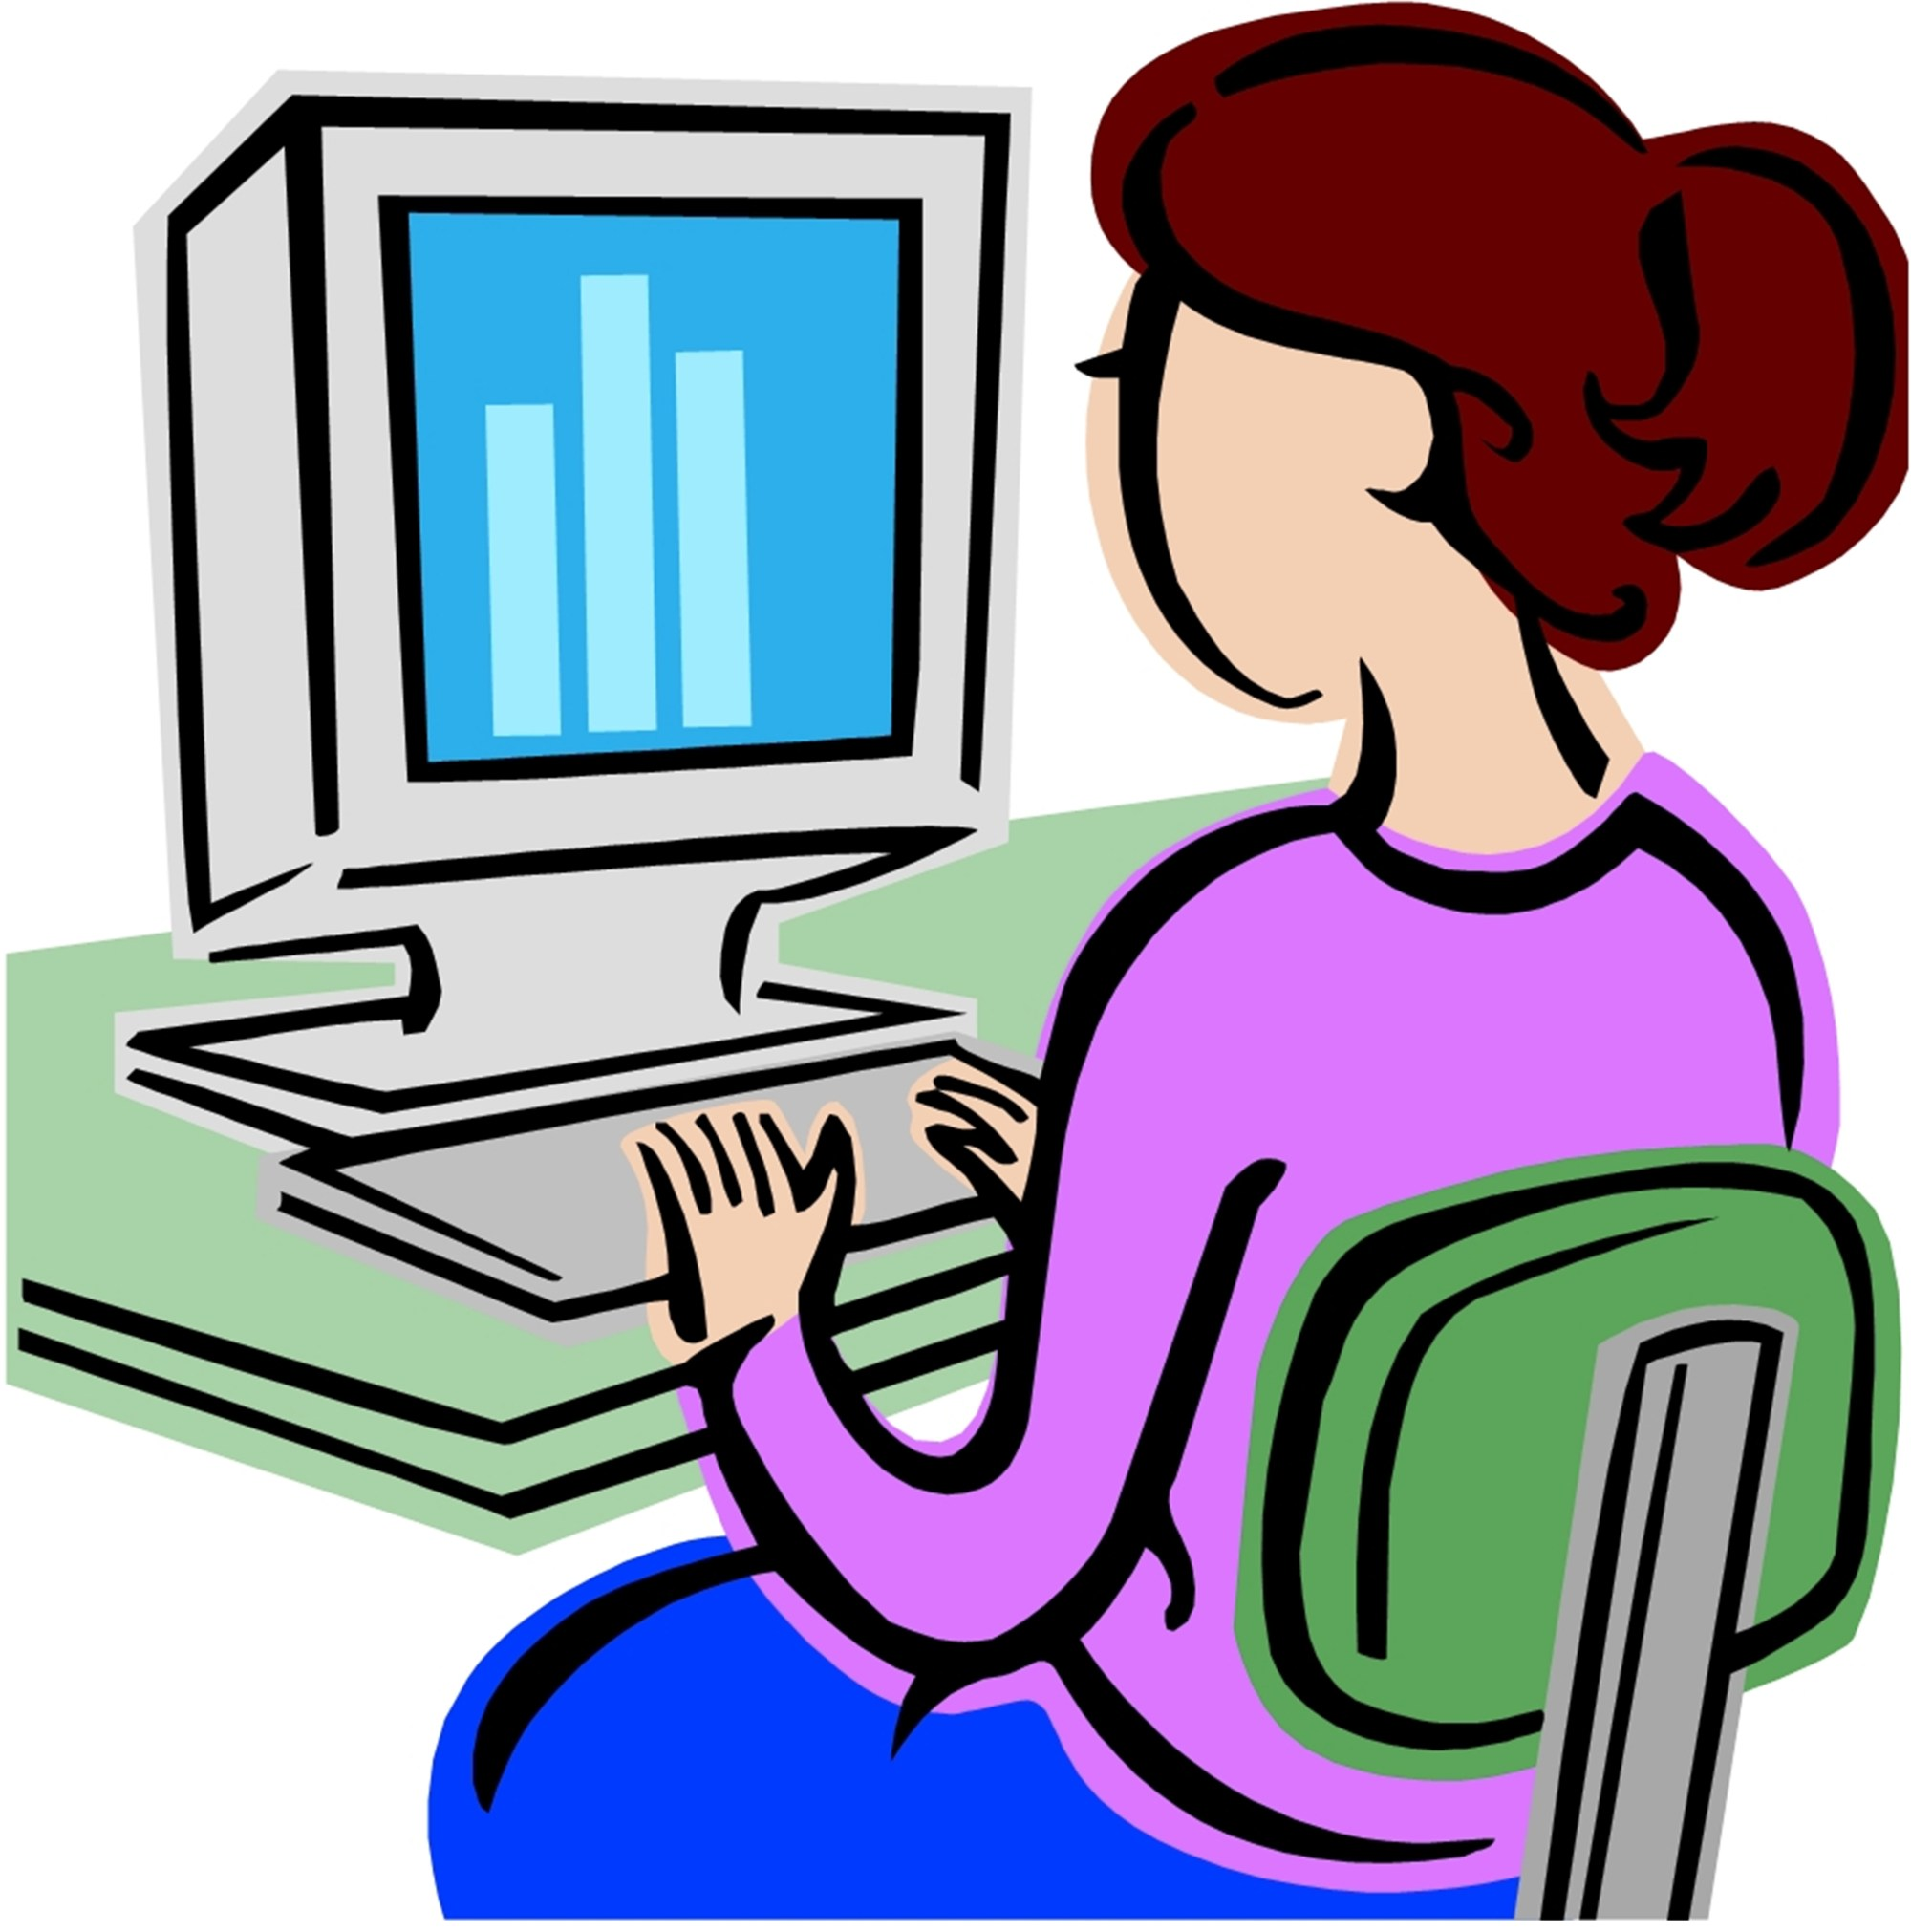 hight resolution of computer classes clipart